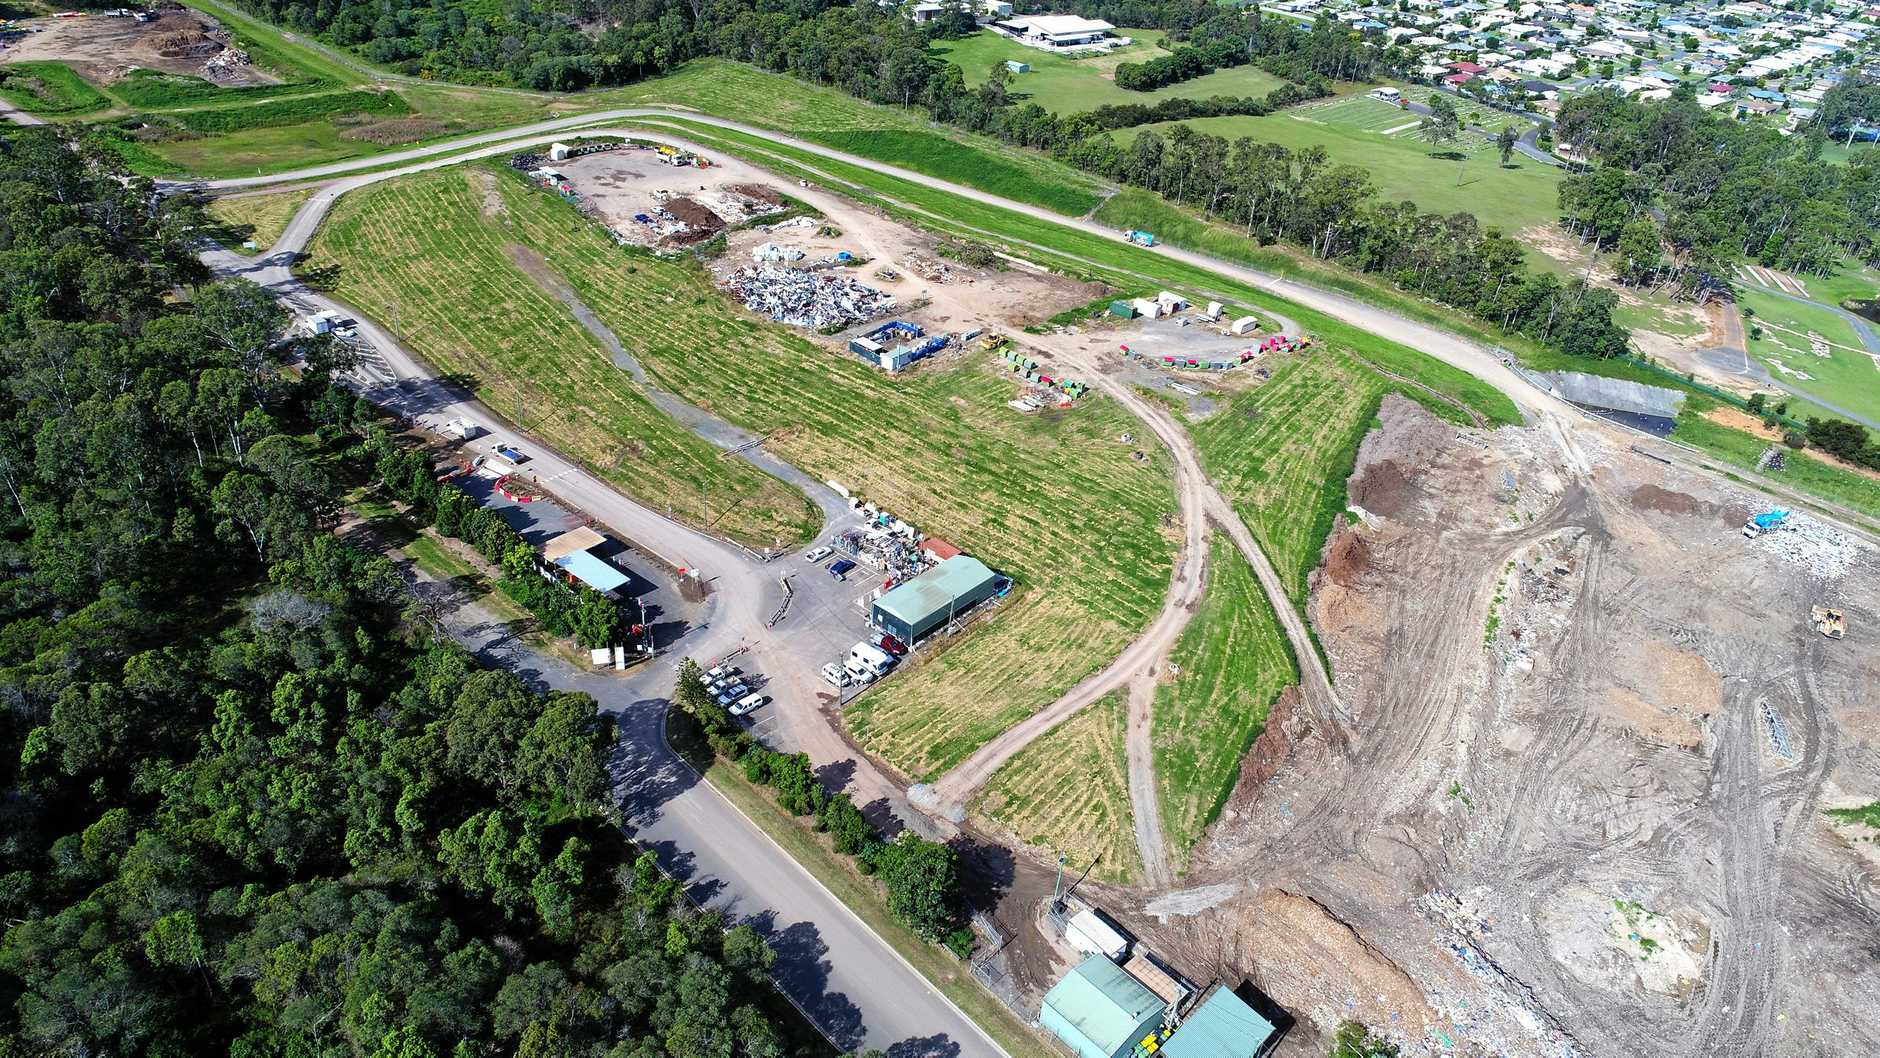 OPINION: A birds-eye view of 'Mt Bonnick'. The course of action Gympie Regional Council has come up with after working on the rubbish issue since 2013 is to 'procure short-term waste disposal outside the region'. Seriously, our plan appears to be to beg use of neighbouring councils' tips. At a substantial cost, no doubt.